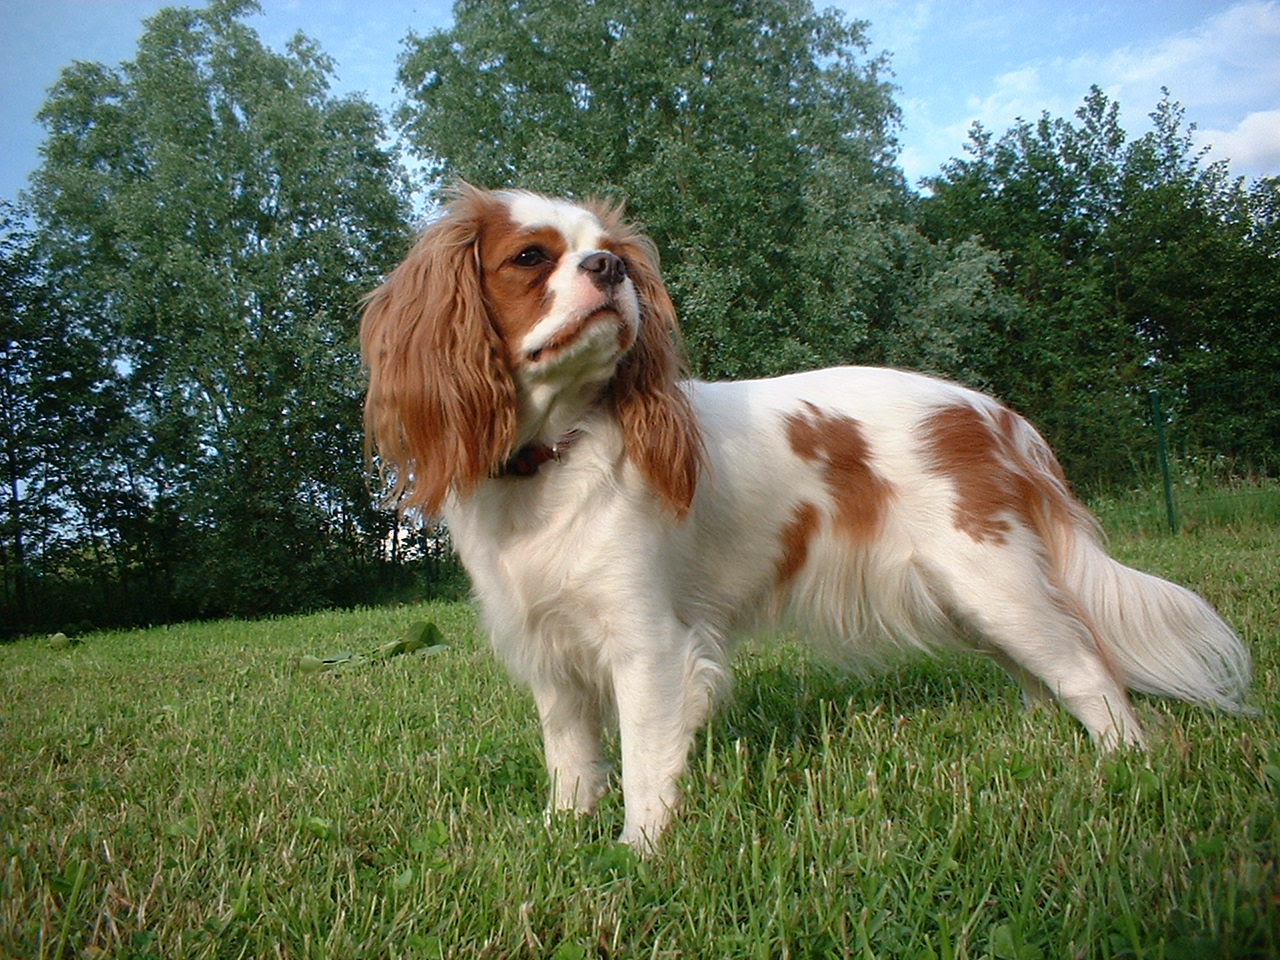 39 Cosas Curiosas Que Quizas No Sabias 38437 furthermore 3015 476 as well G 6mfn4j2t16f5hg0lahpuha0 together with Chinese Vs Western Astrology besides Cavalier King Charles Spaniel. on animal intelligence ranking